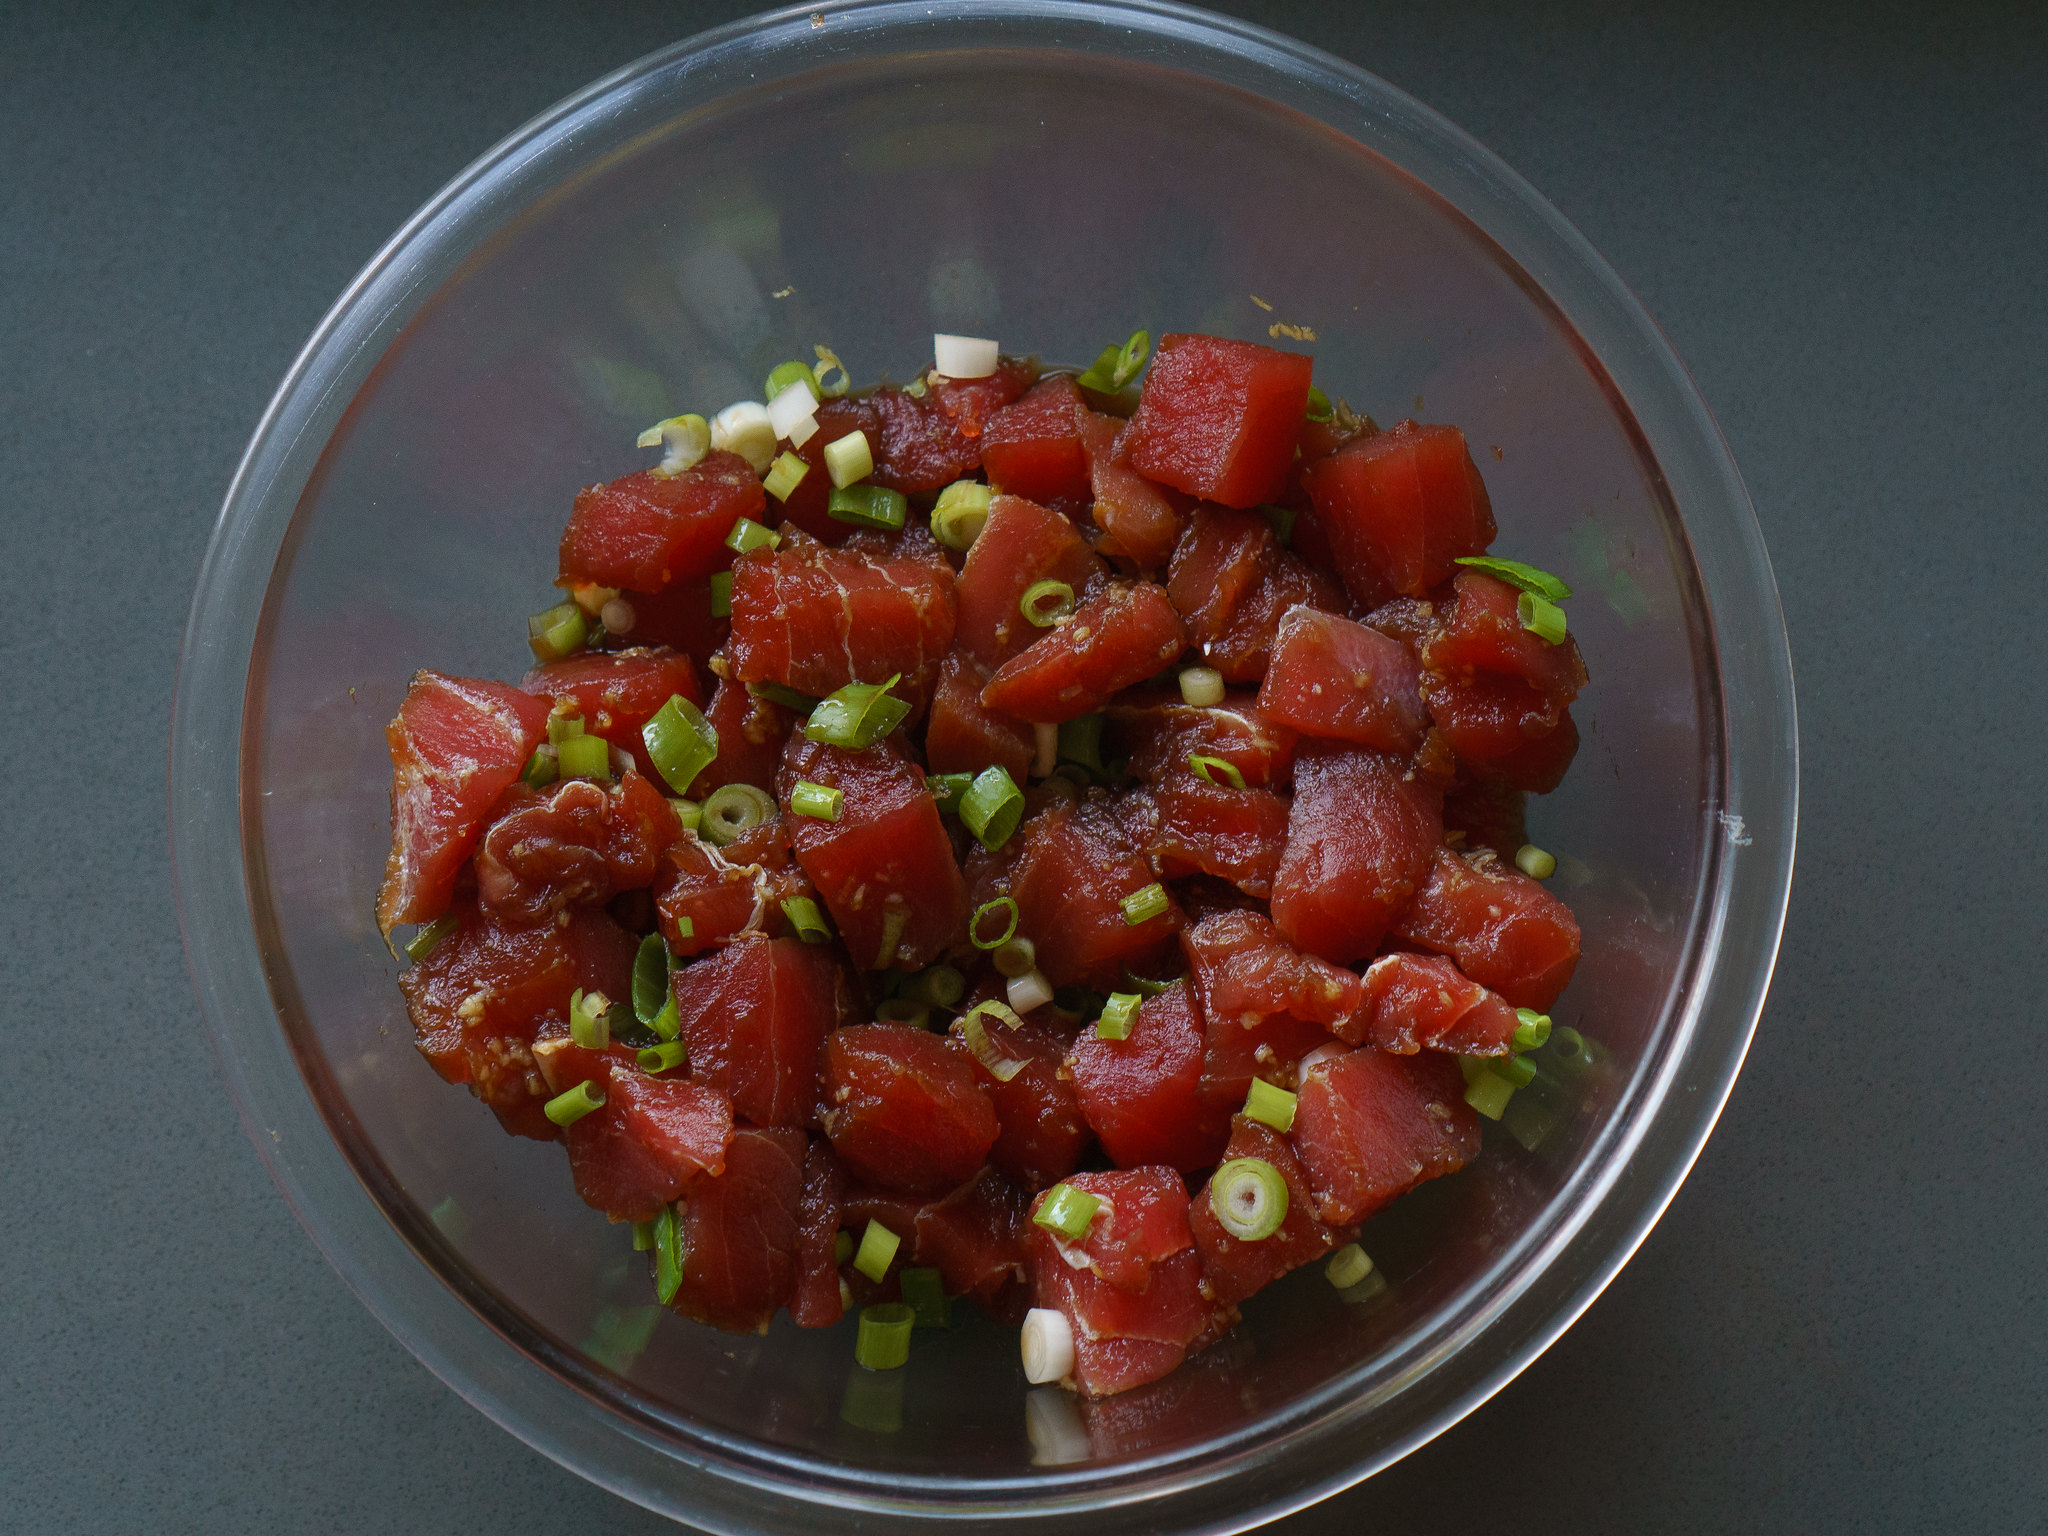 Poke in a Bowl